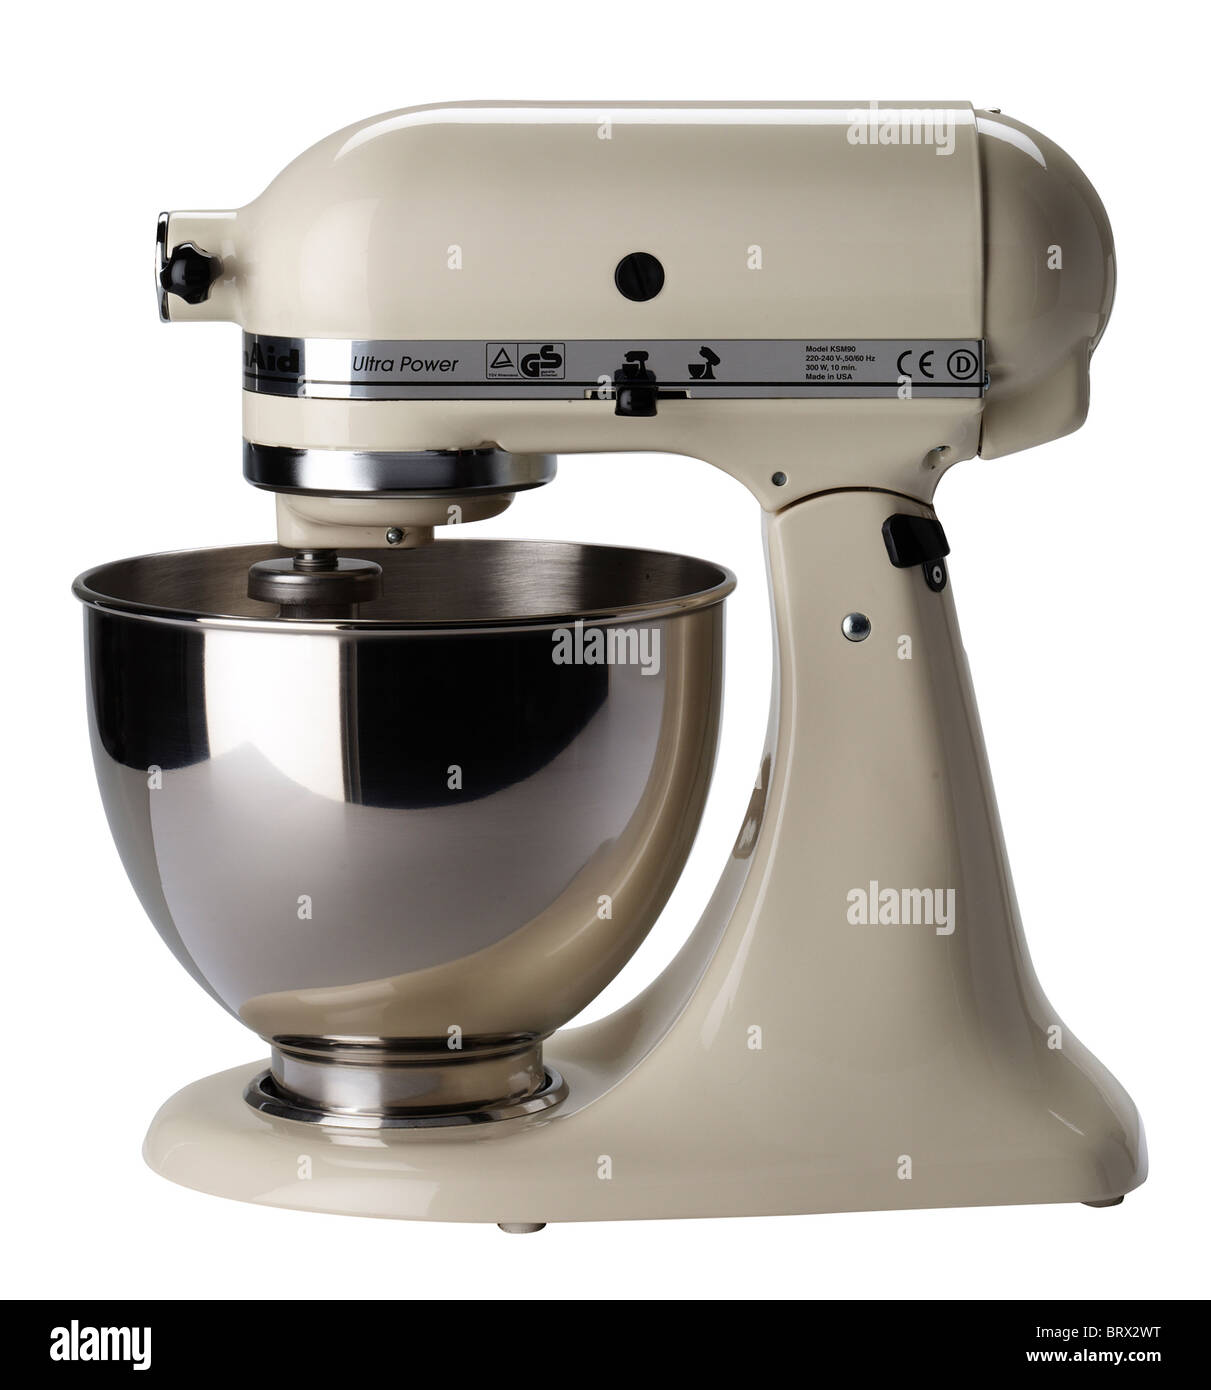 Kitchenaid Stockfotos & Kitchenaid Bilder - Alamy